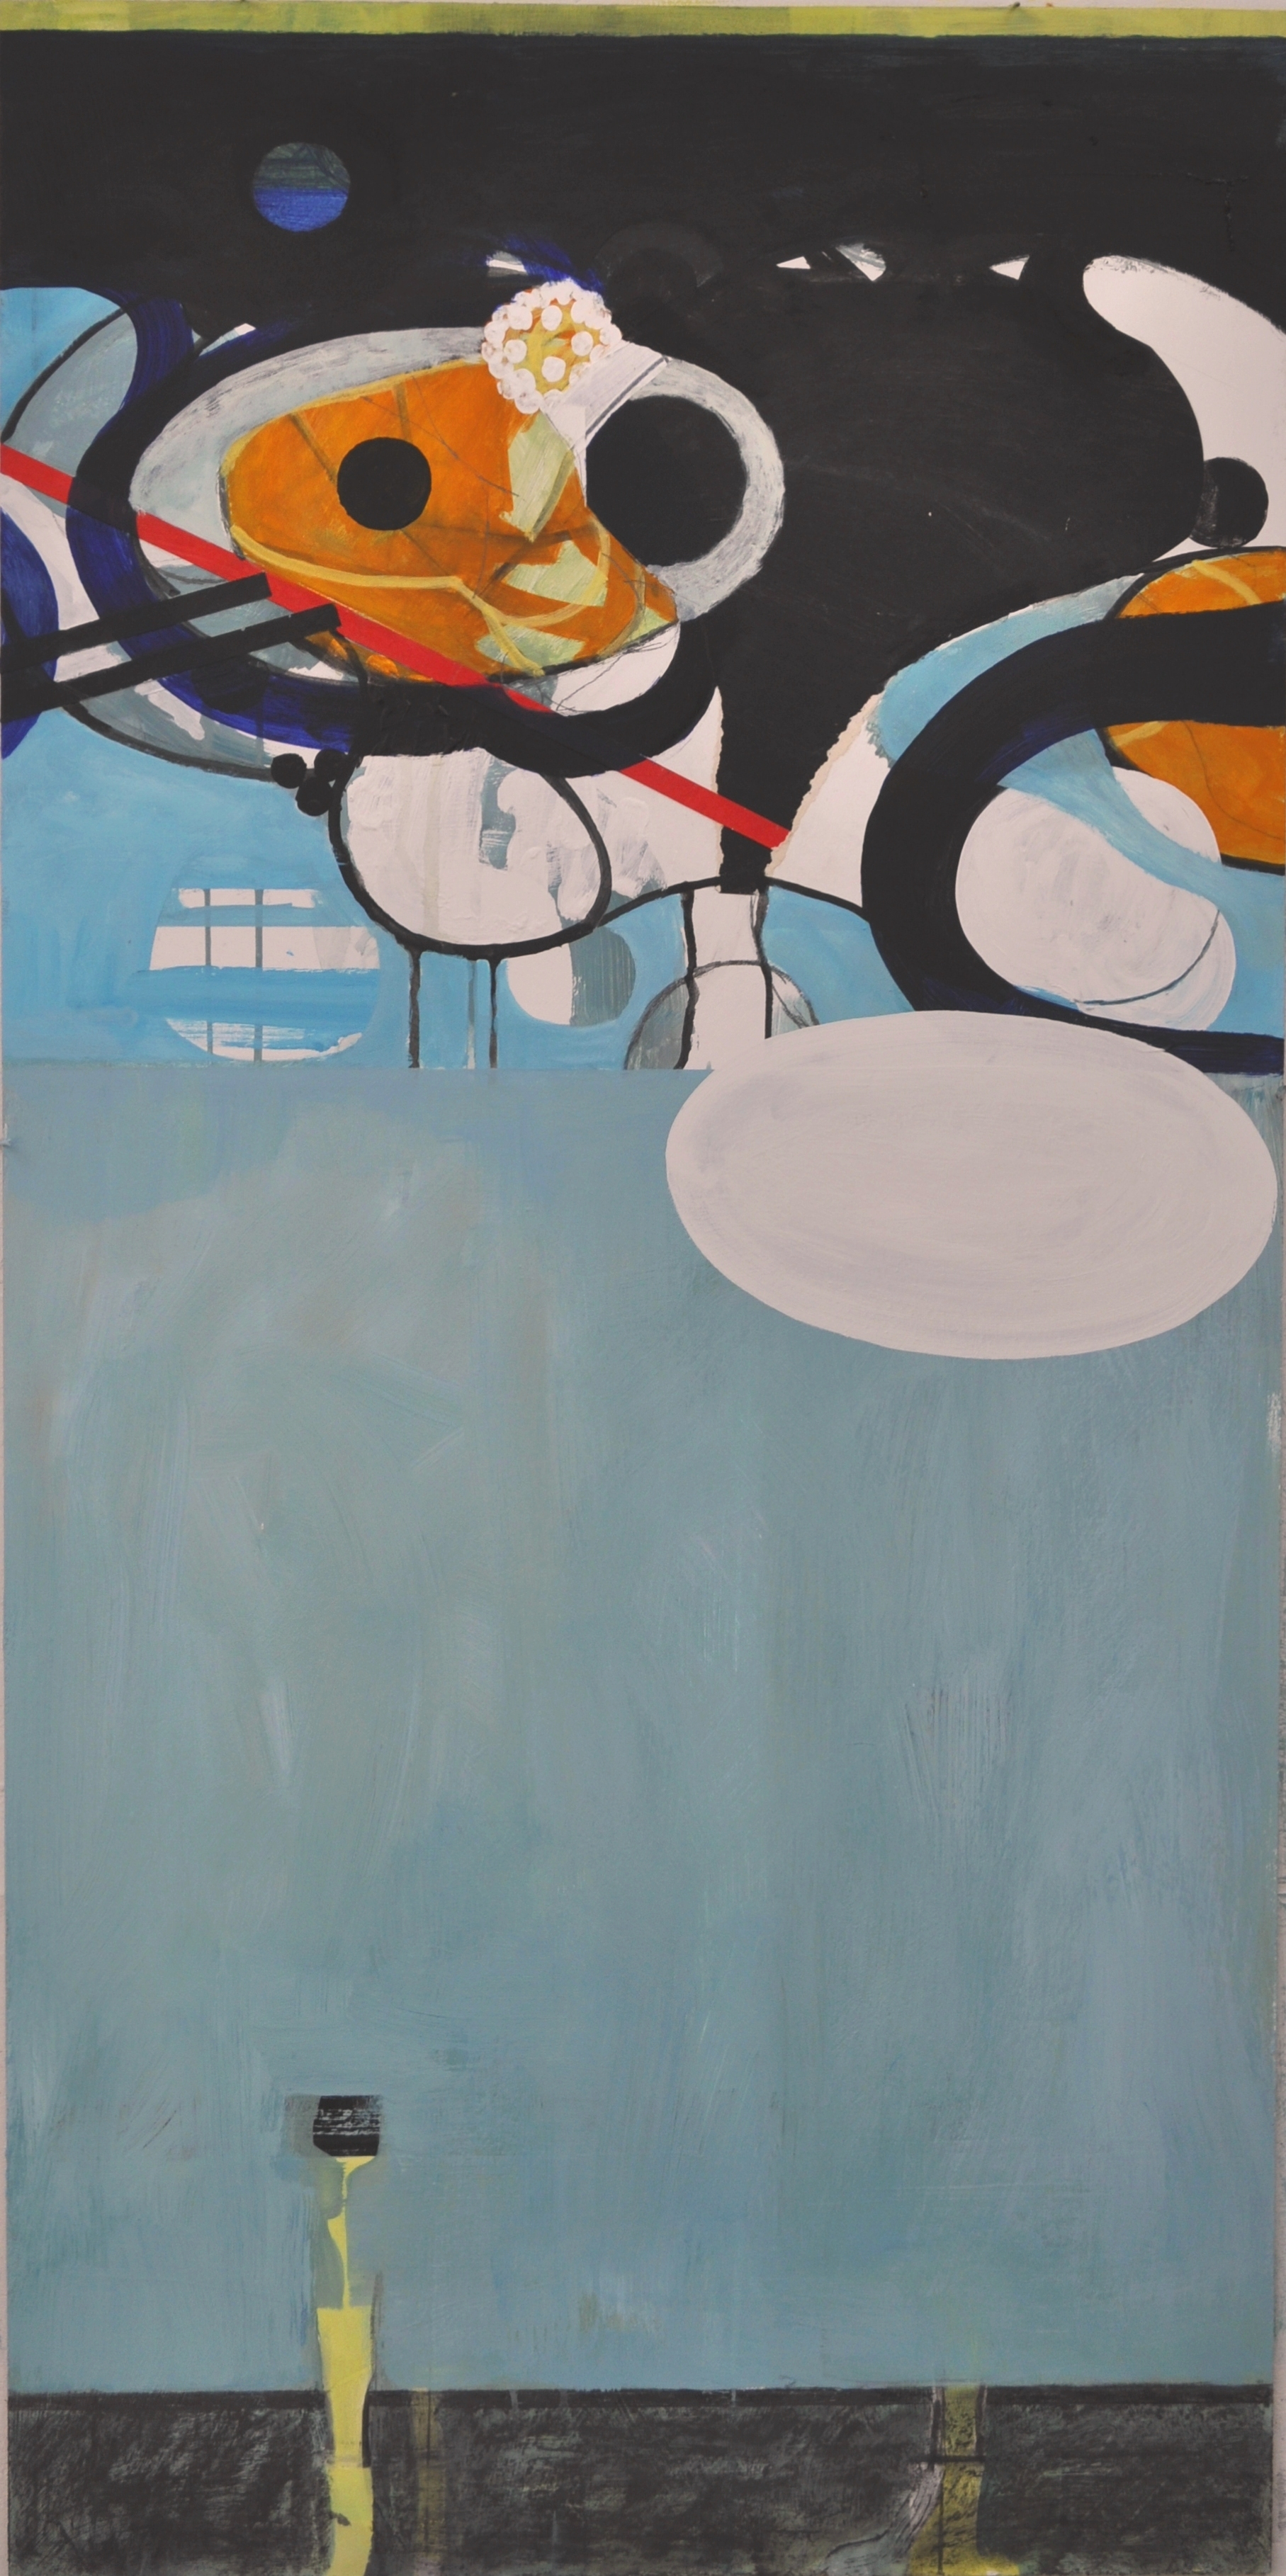 2  Visitation 2012 Acrylic and graphite on board 122x61cm.JPG